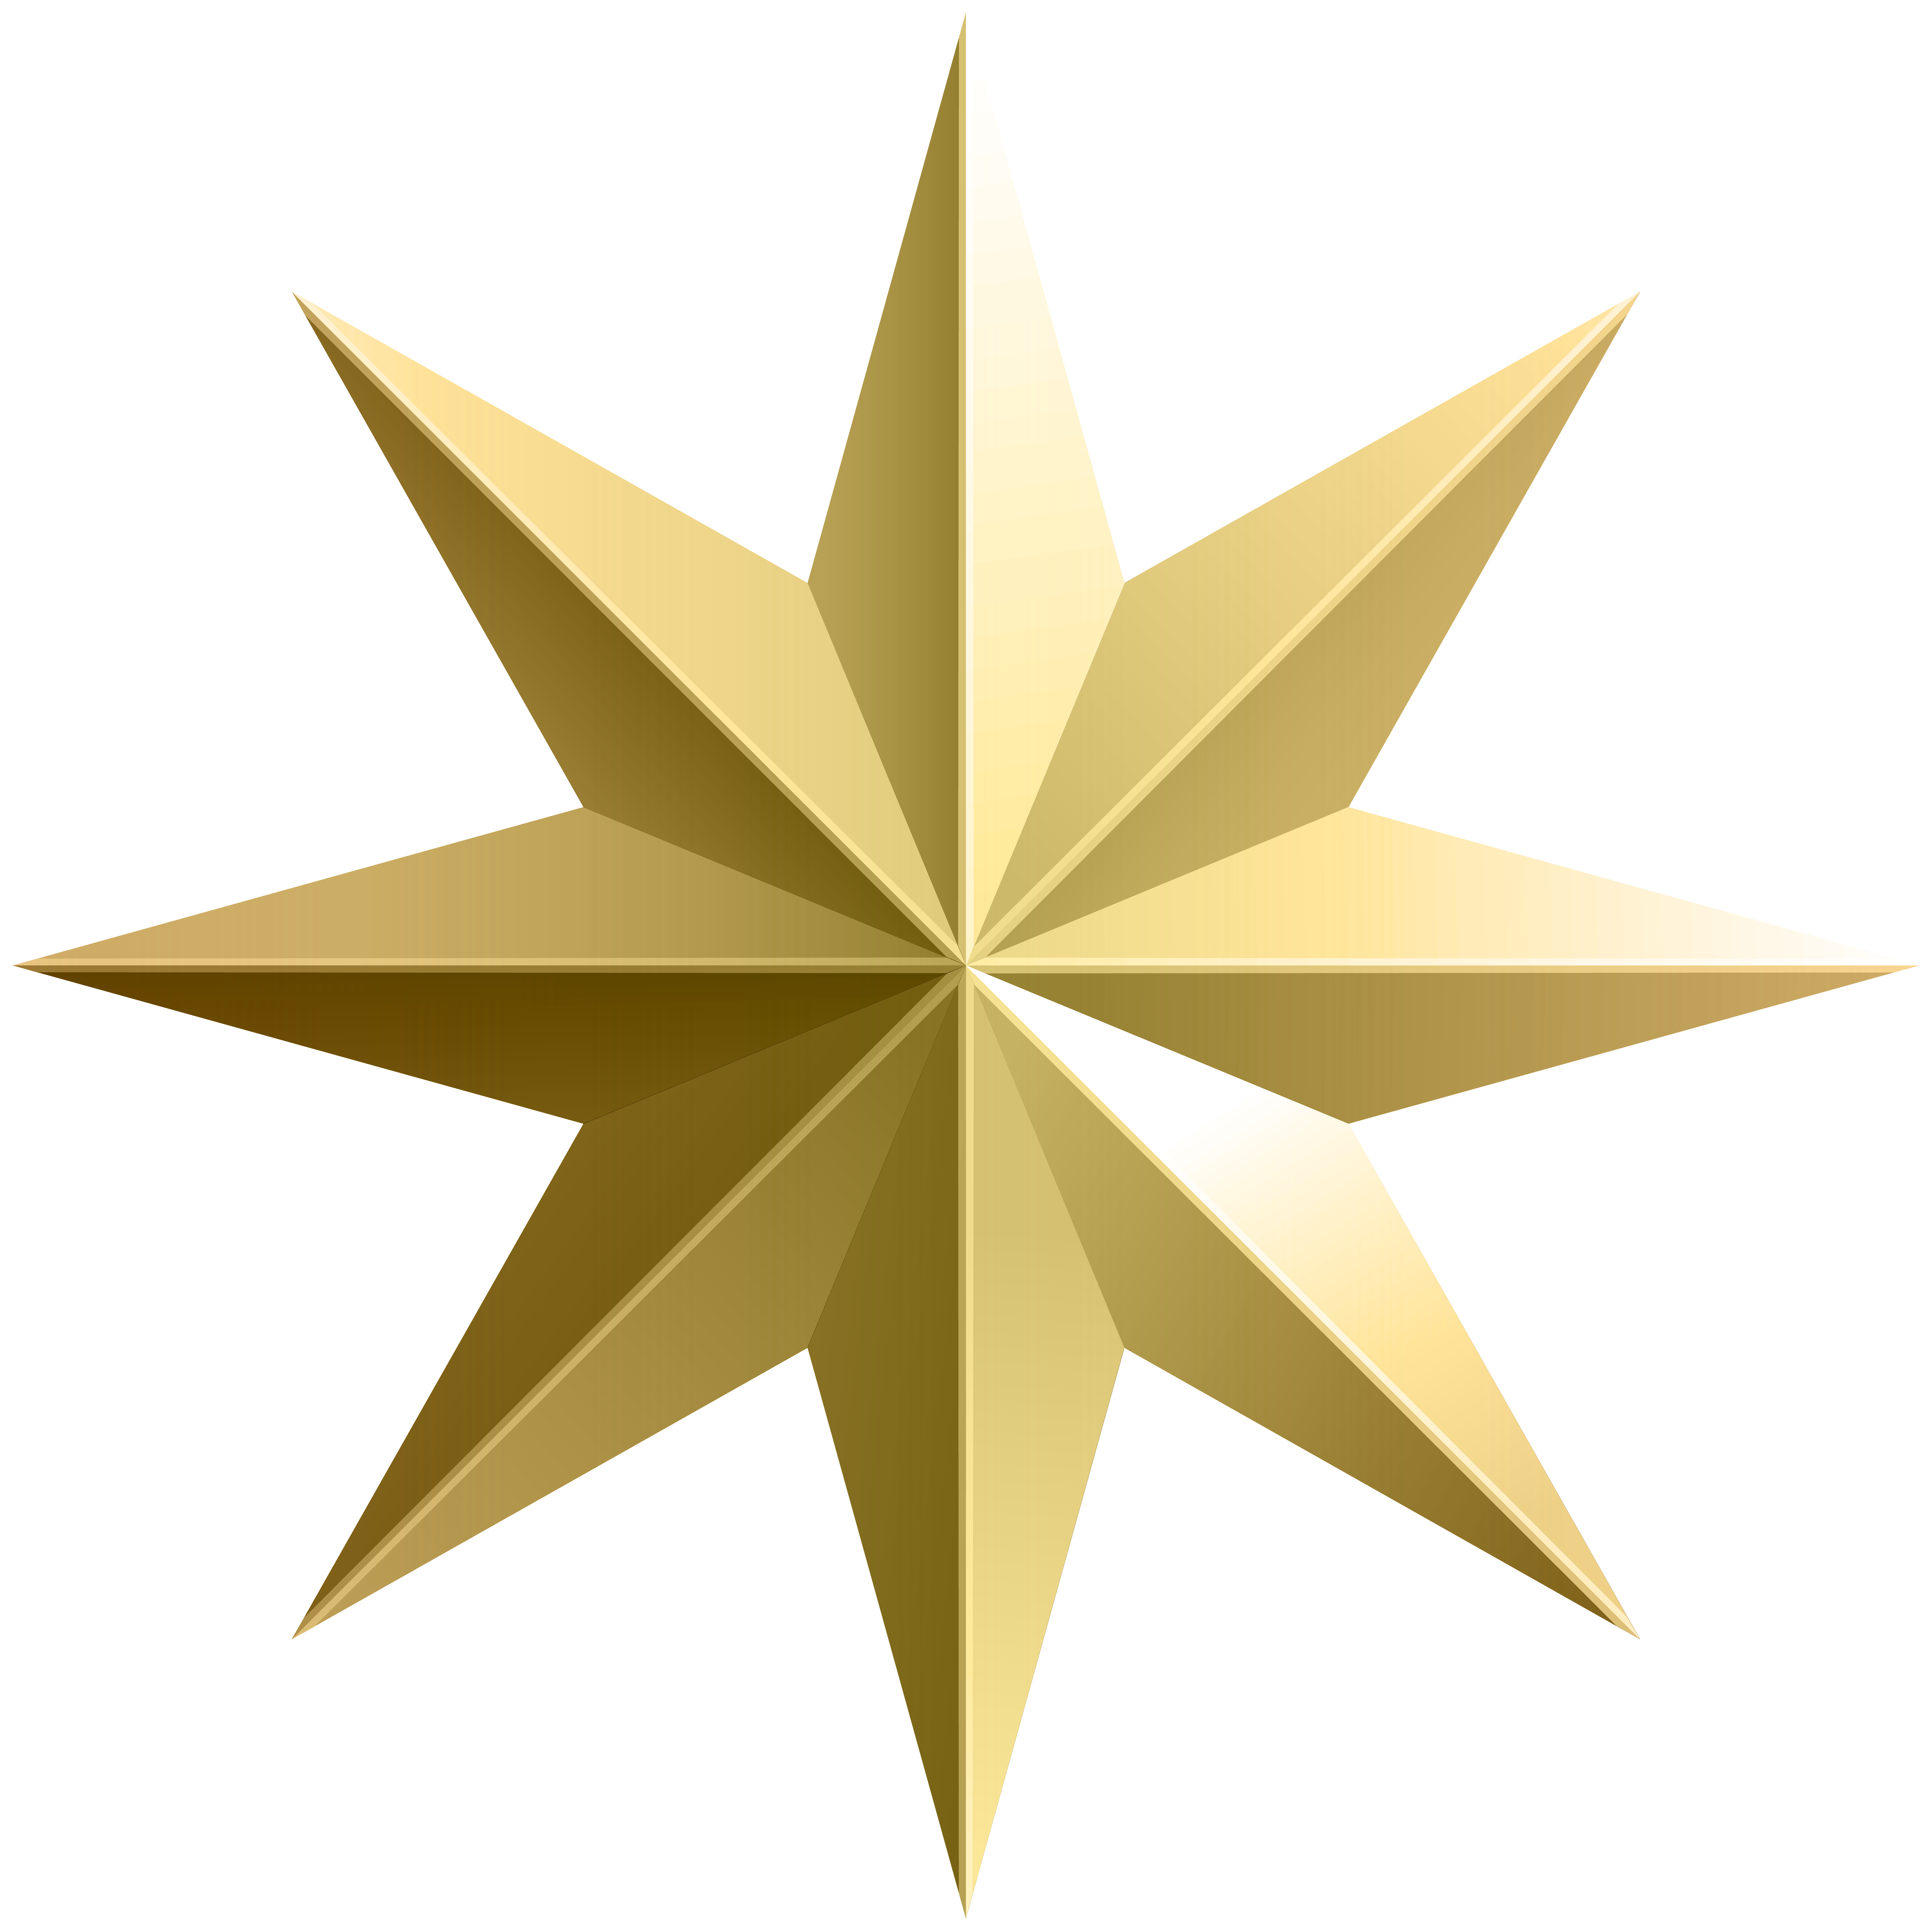 Golden snowflake clipart svg royalty free Gold Star Transparent PNG Image | Starry | Pinterest | Star svg royalty free